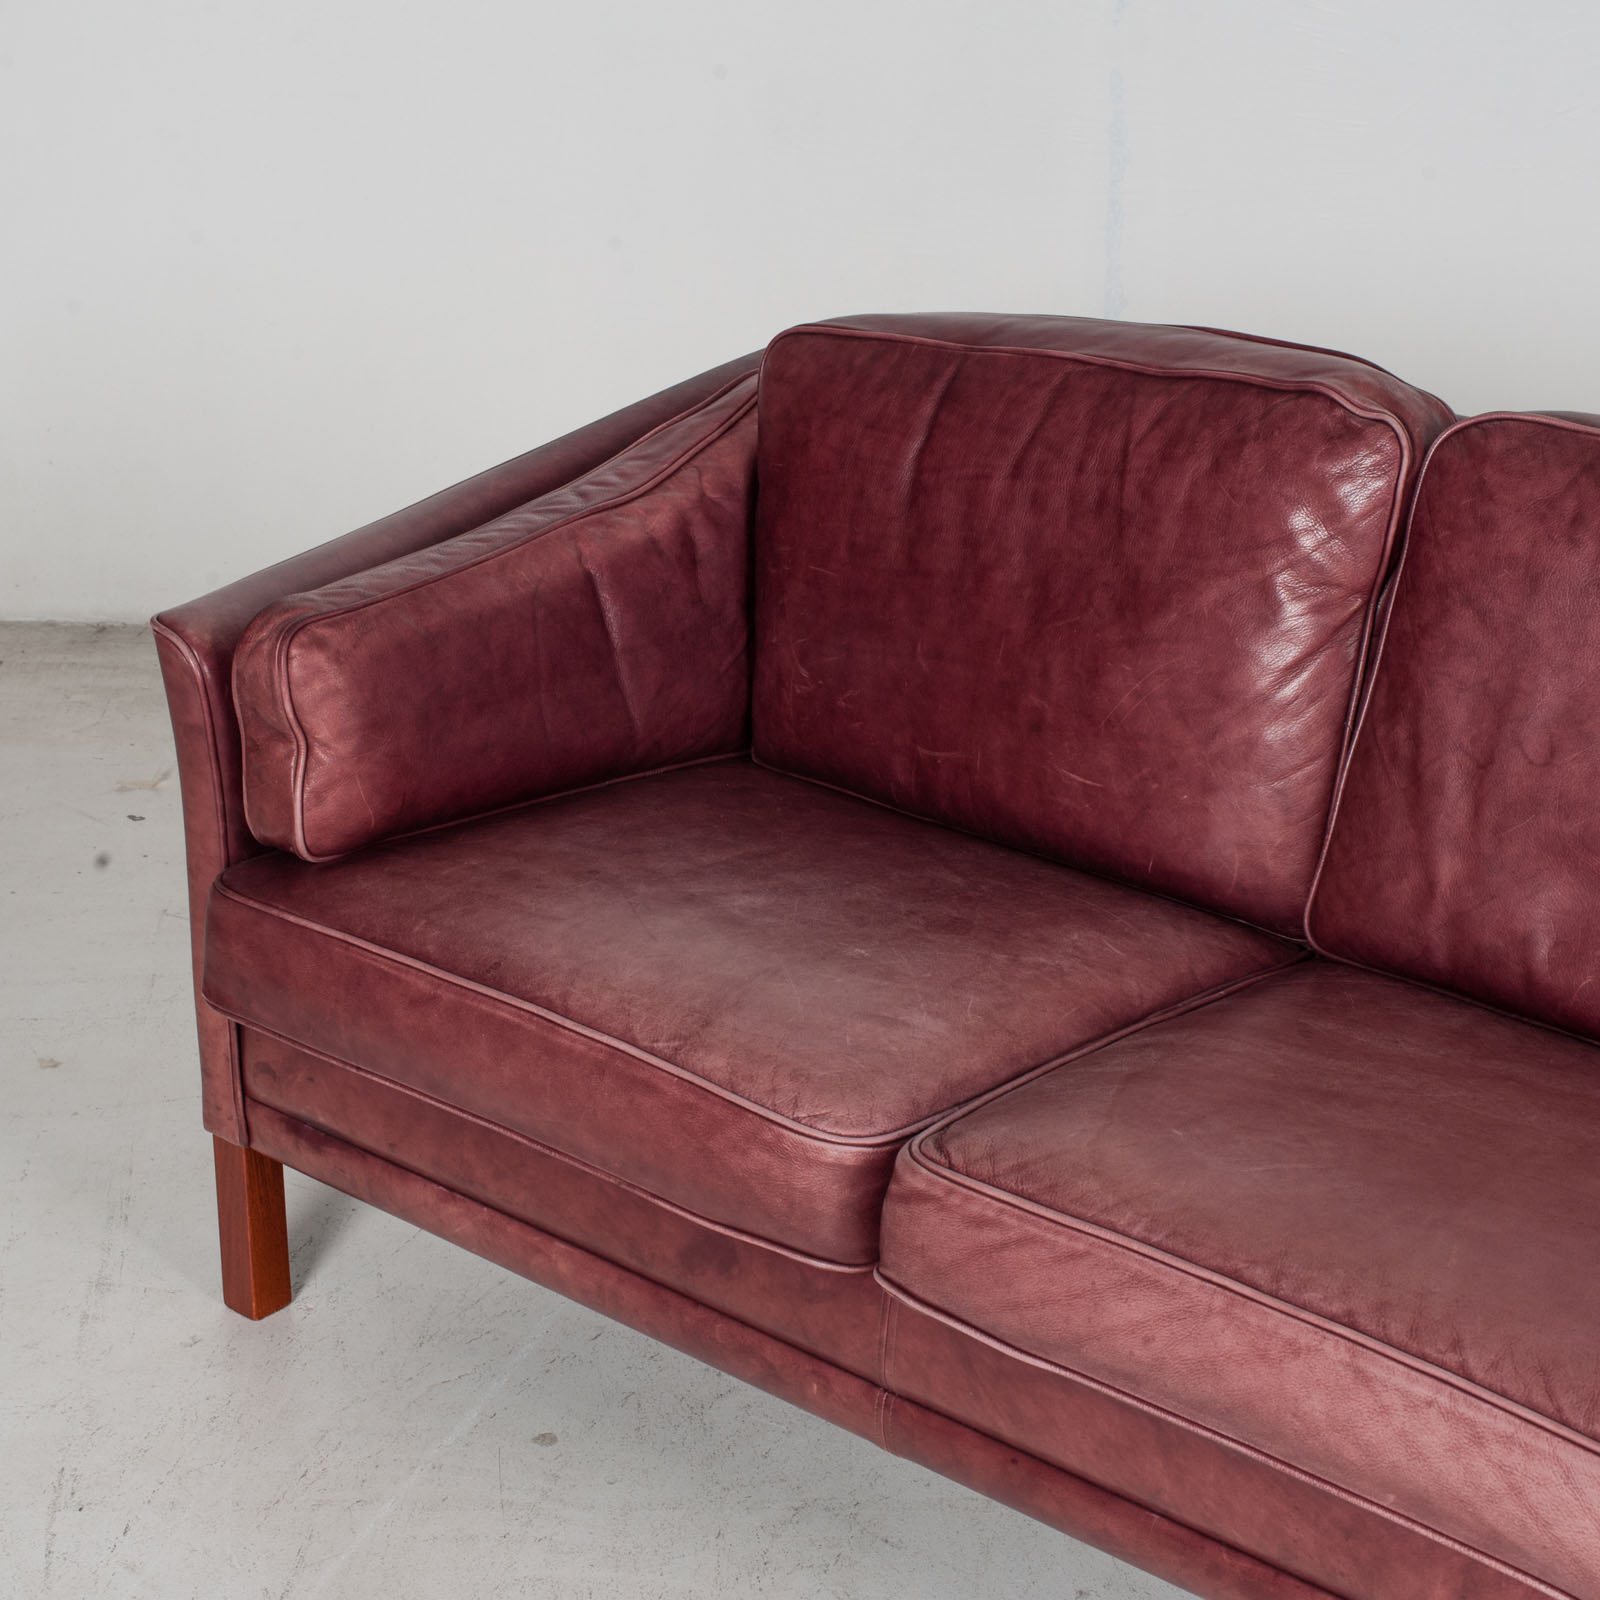 3 Seat Sofa By Mogens Hansen In Red Leather, 1960s, Denmark 5